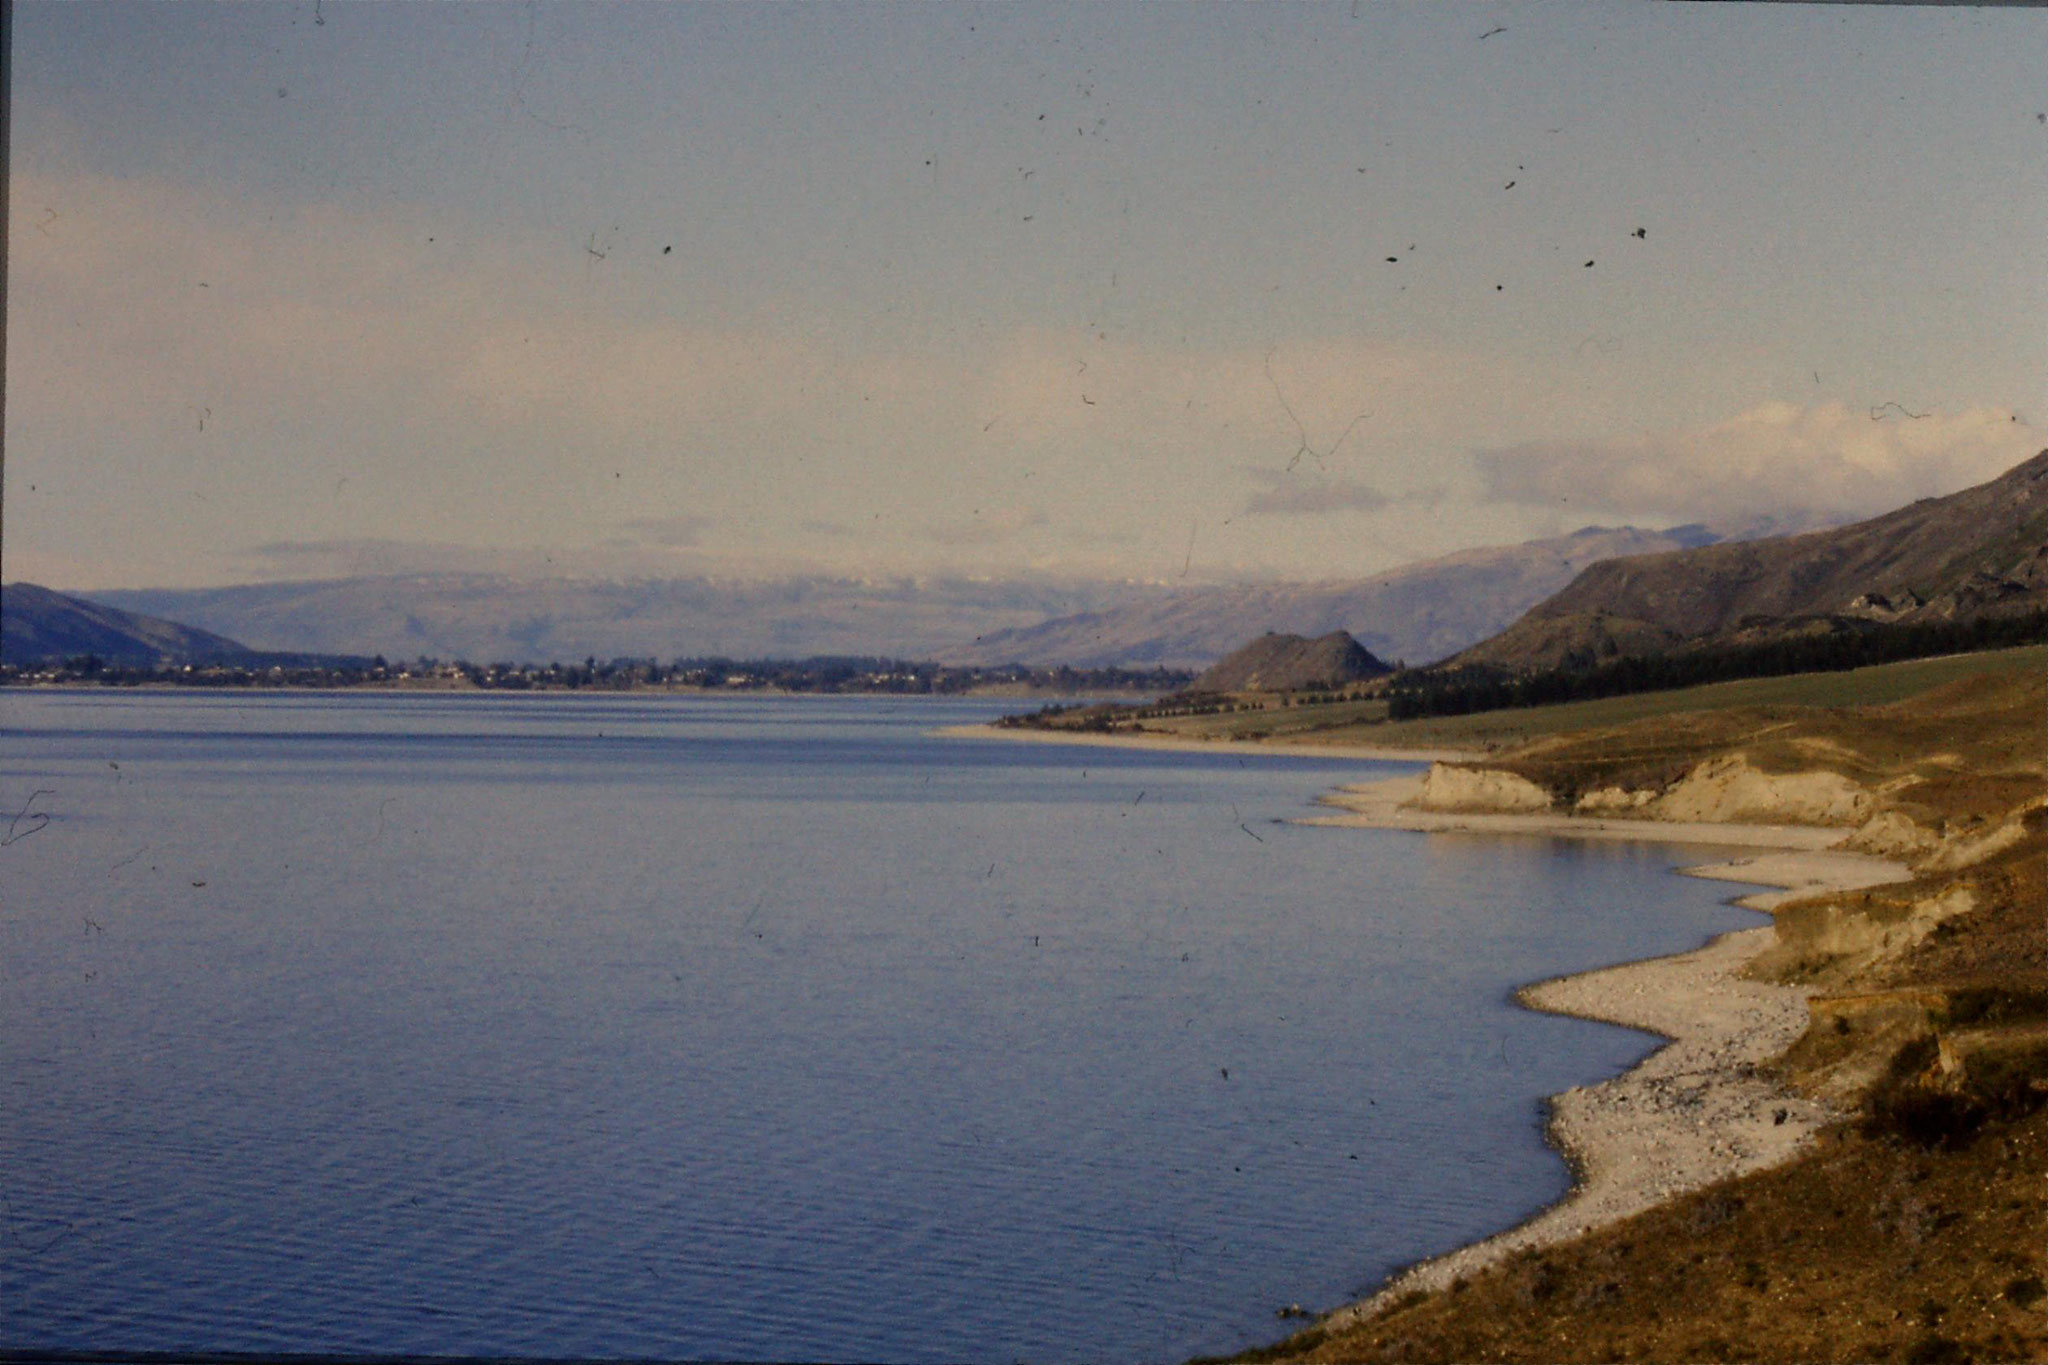 21/8/1990: 19: Lake Hawea